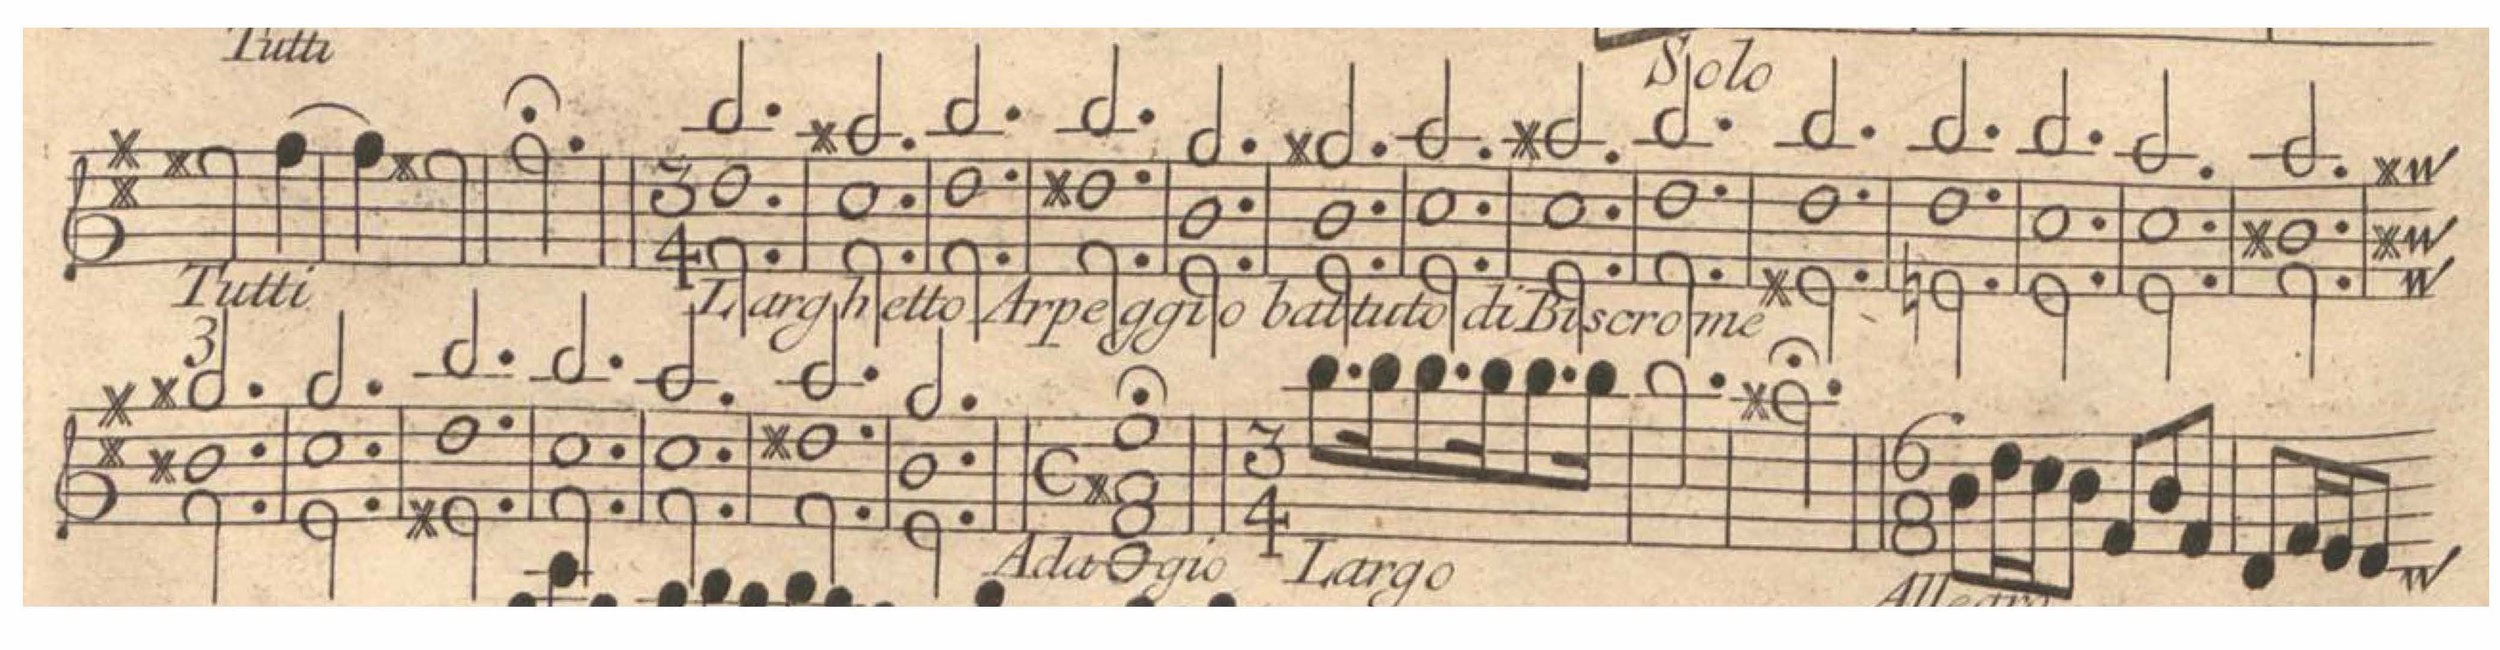 Figure 1. Vivaldi,  L'estro armonico,  Op. 3, No. 10; II. Largo-Larghetto, Violin I concertante. Detail from the first edition published in Amsterdam, 1711. Vivaldi's note –  Arpeggio battuto di Biscrome  — means that the beat should be divided into thirty-second notes.